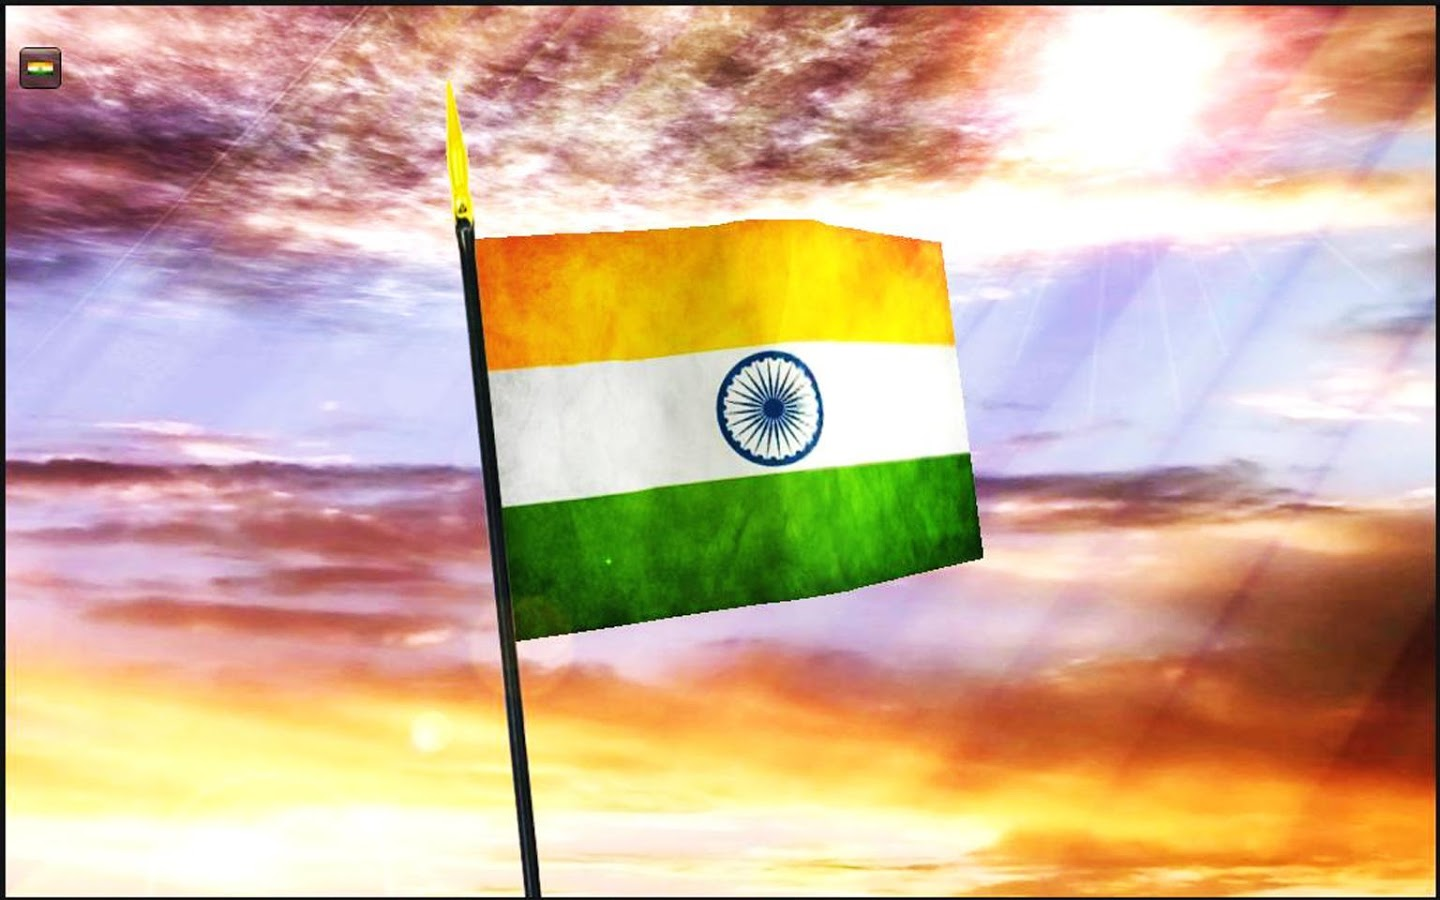 Independence Day Mobile Wallpapers: (**New**) 15 August Independence Day Live Wallpapers 2018